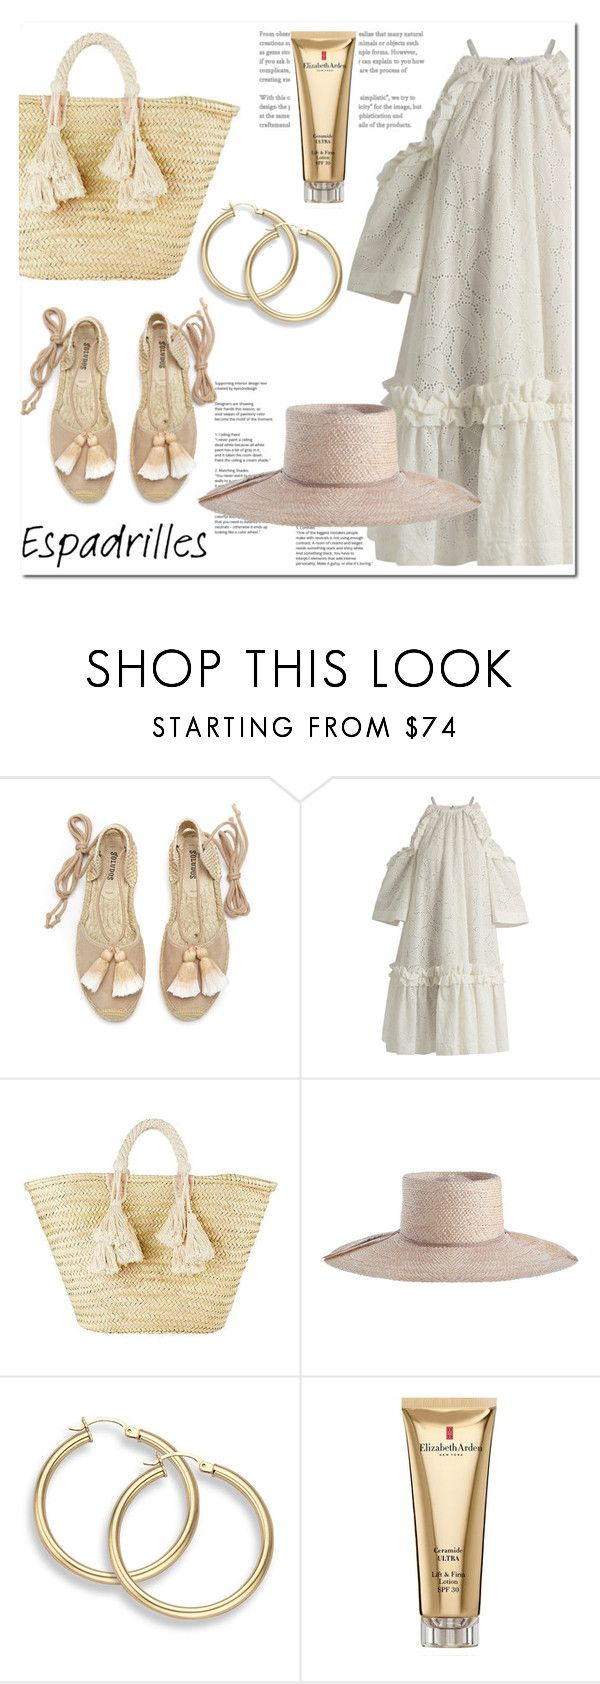 """""""Espadrilles"""" by ilona-828 ❤ liked on Polyvore featuring Soludos, MSGM, Giselle, Zimmermann, Elizabeth Arden, Summer, espadrilles and polyvoreeditorial"""